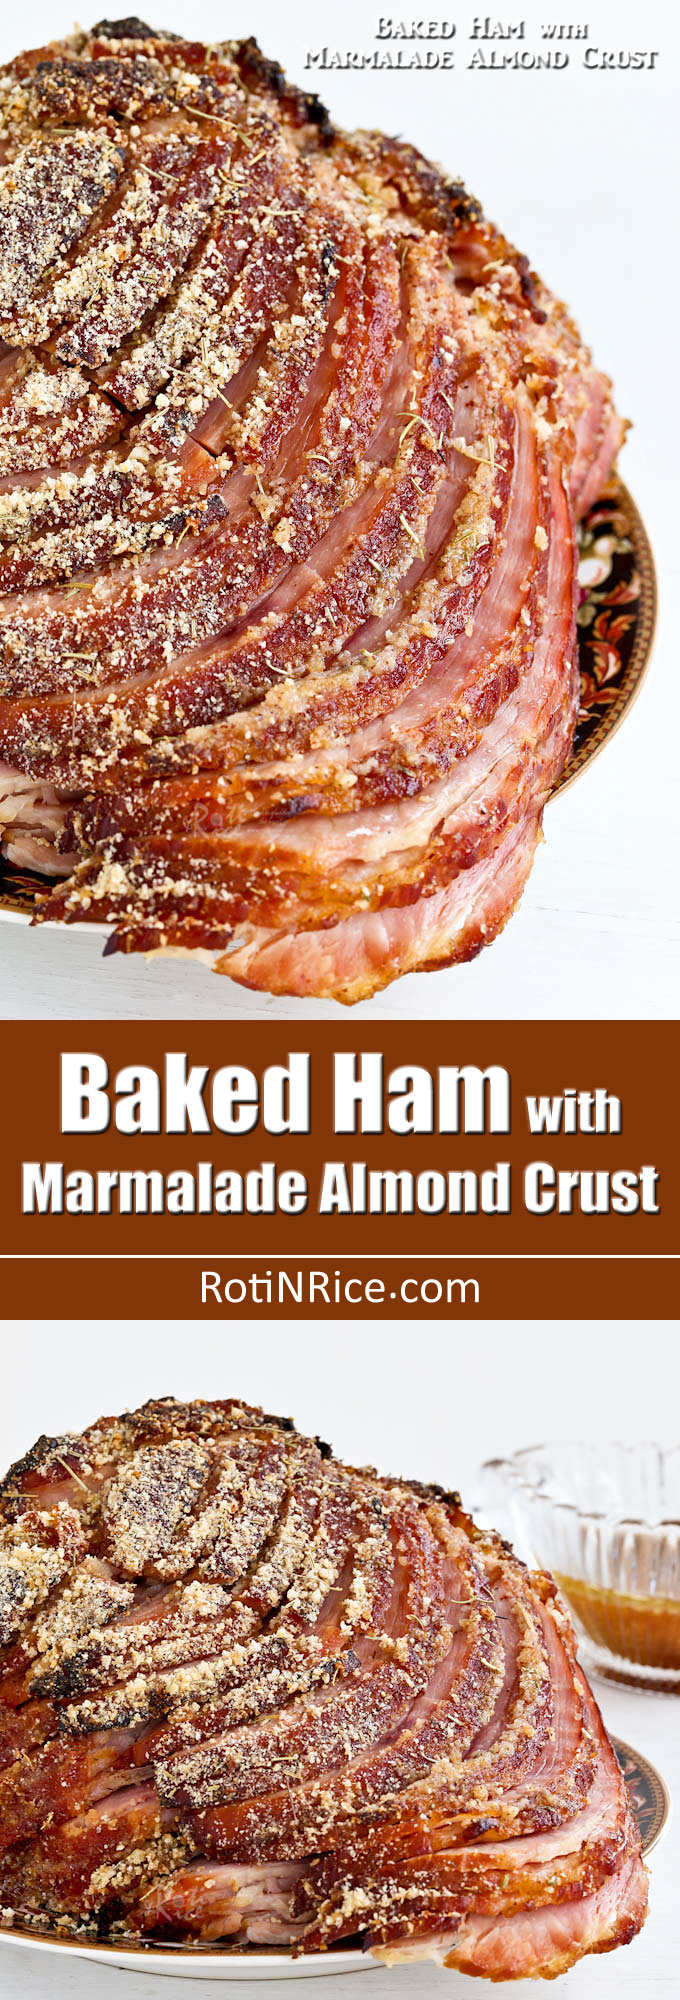 This moist and tasty Baked Ham with Marmalade Almond Crust is a must-try. Makes an impressive main dish and is perfect for  Sunday supper or the holidays! | RotiNRice.com